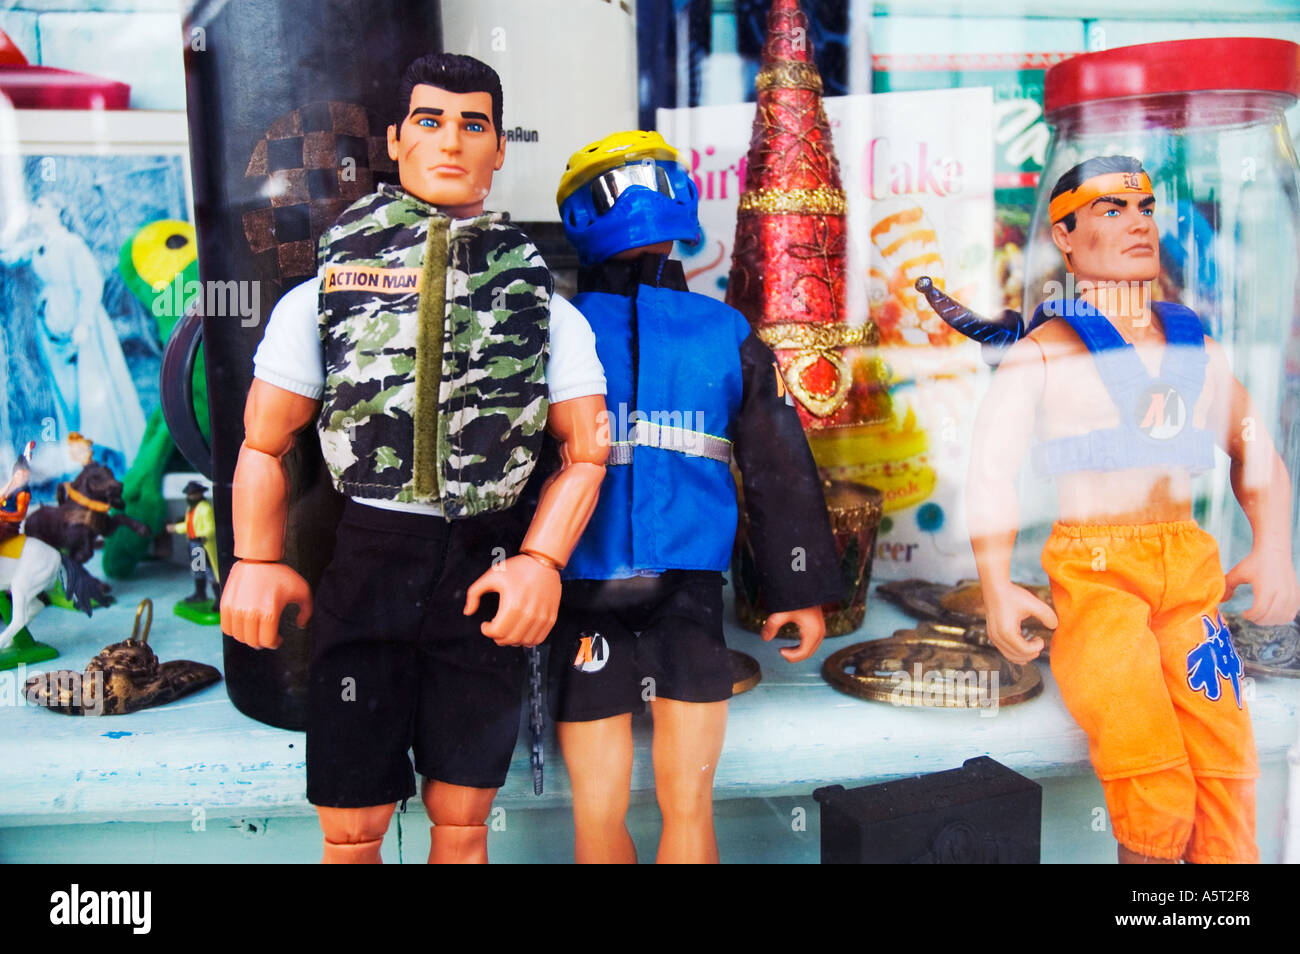 Action man toy - Stock Image